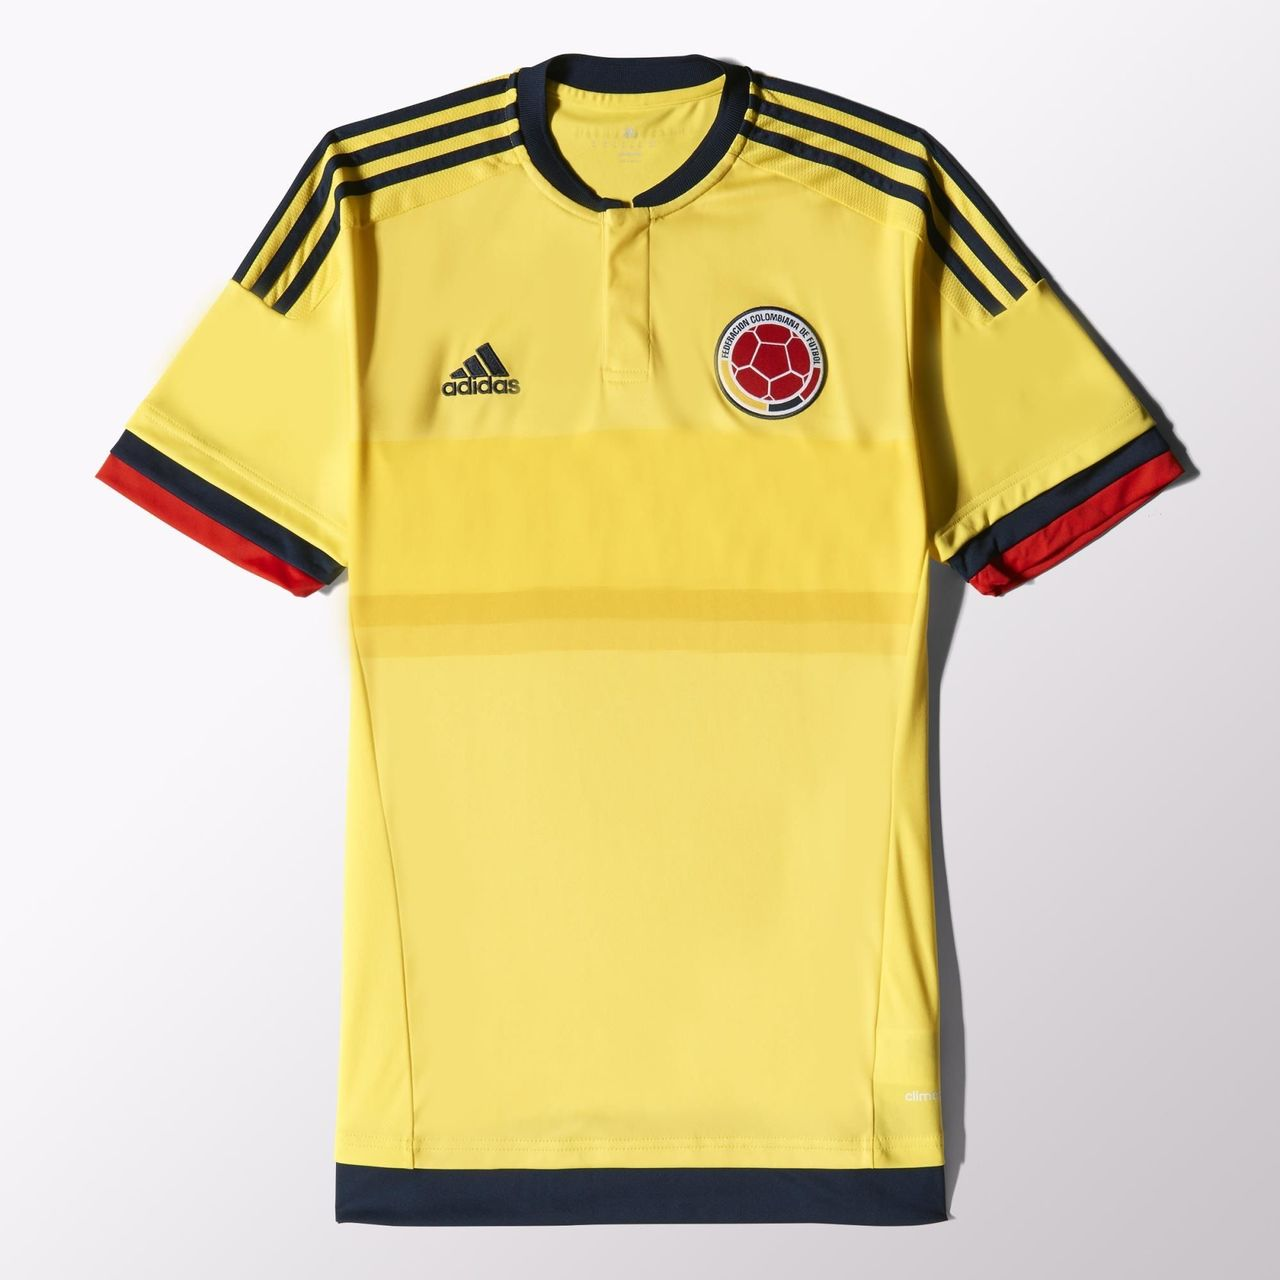 551199e92f2 Click to enlarge image colombia-2015-adidas-home-football-shirt- ...